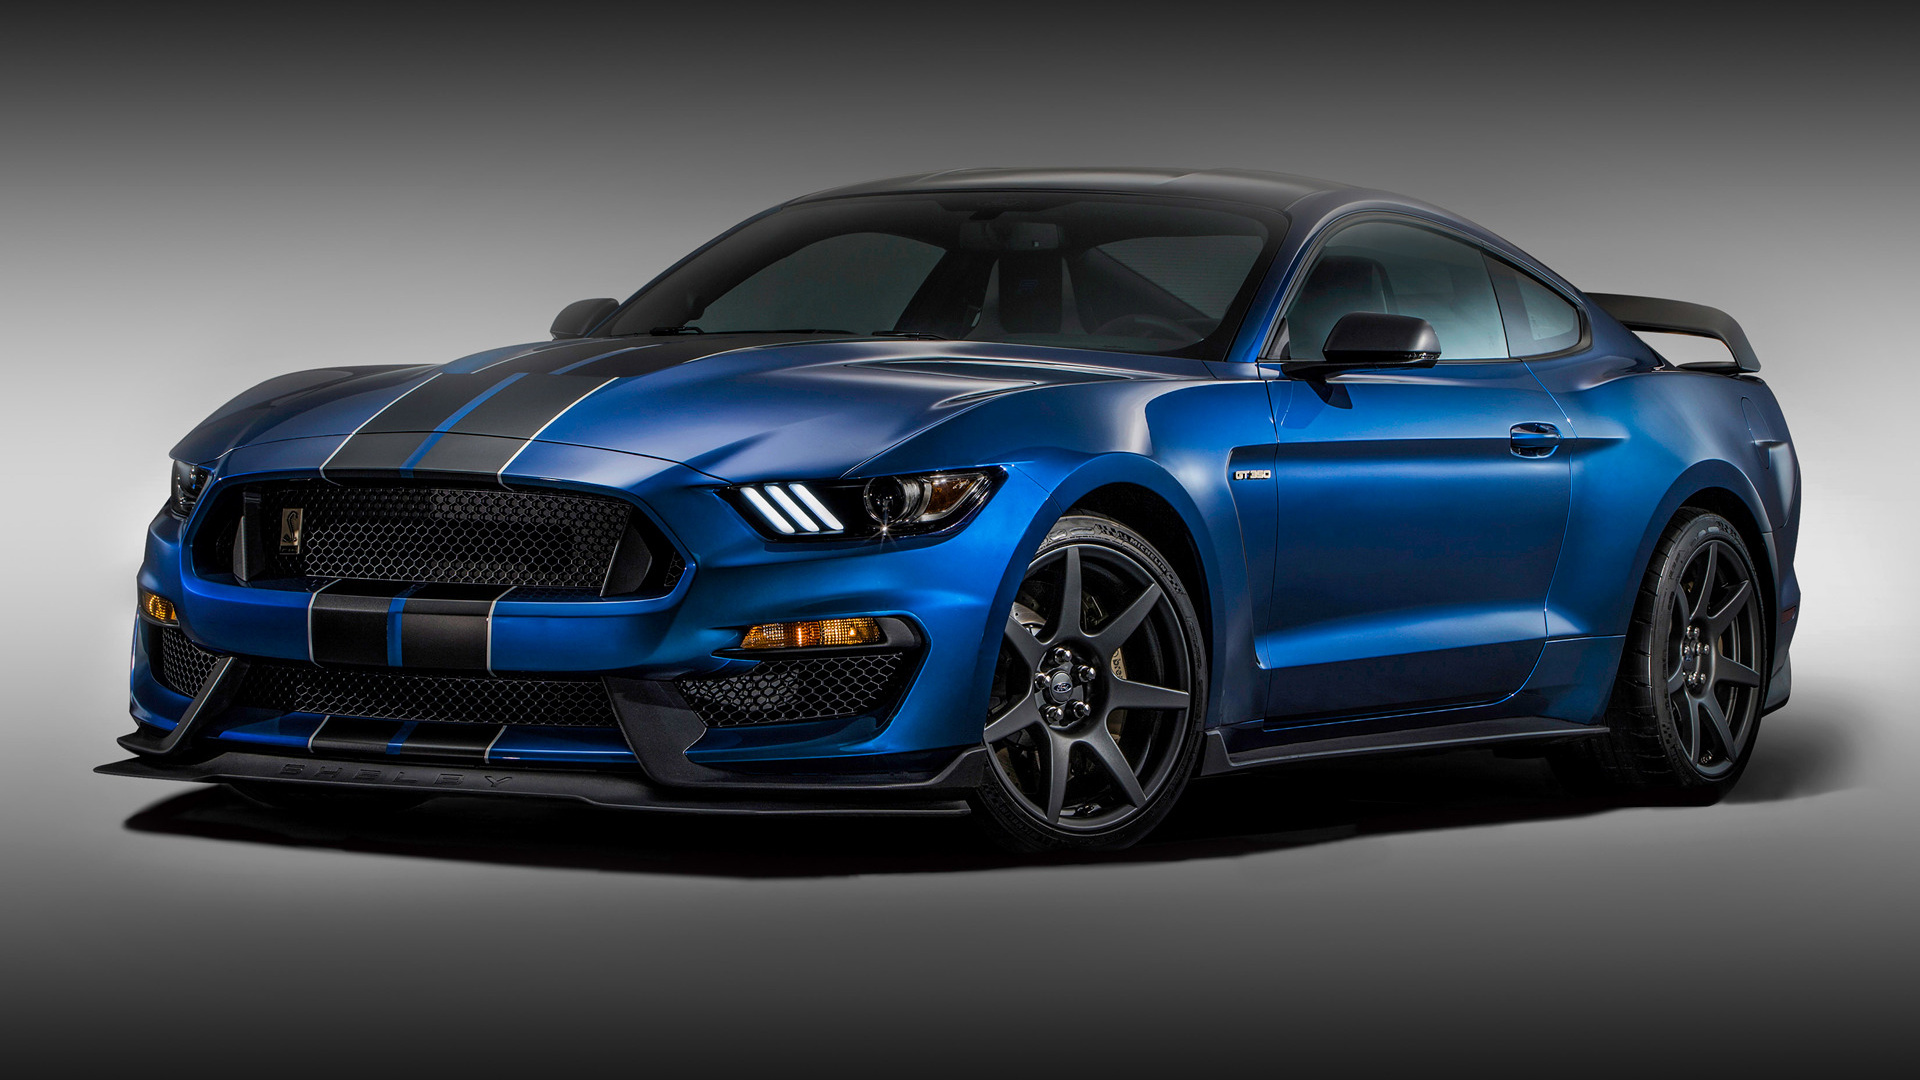 shelby mustang wallpaper - photo #12